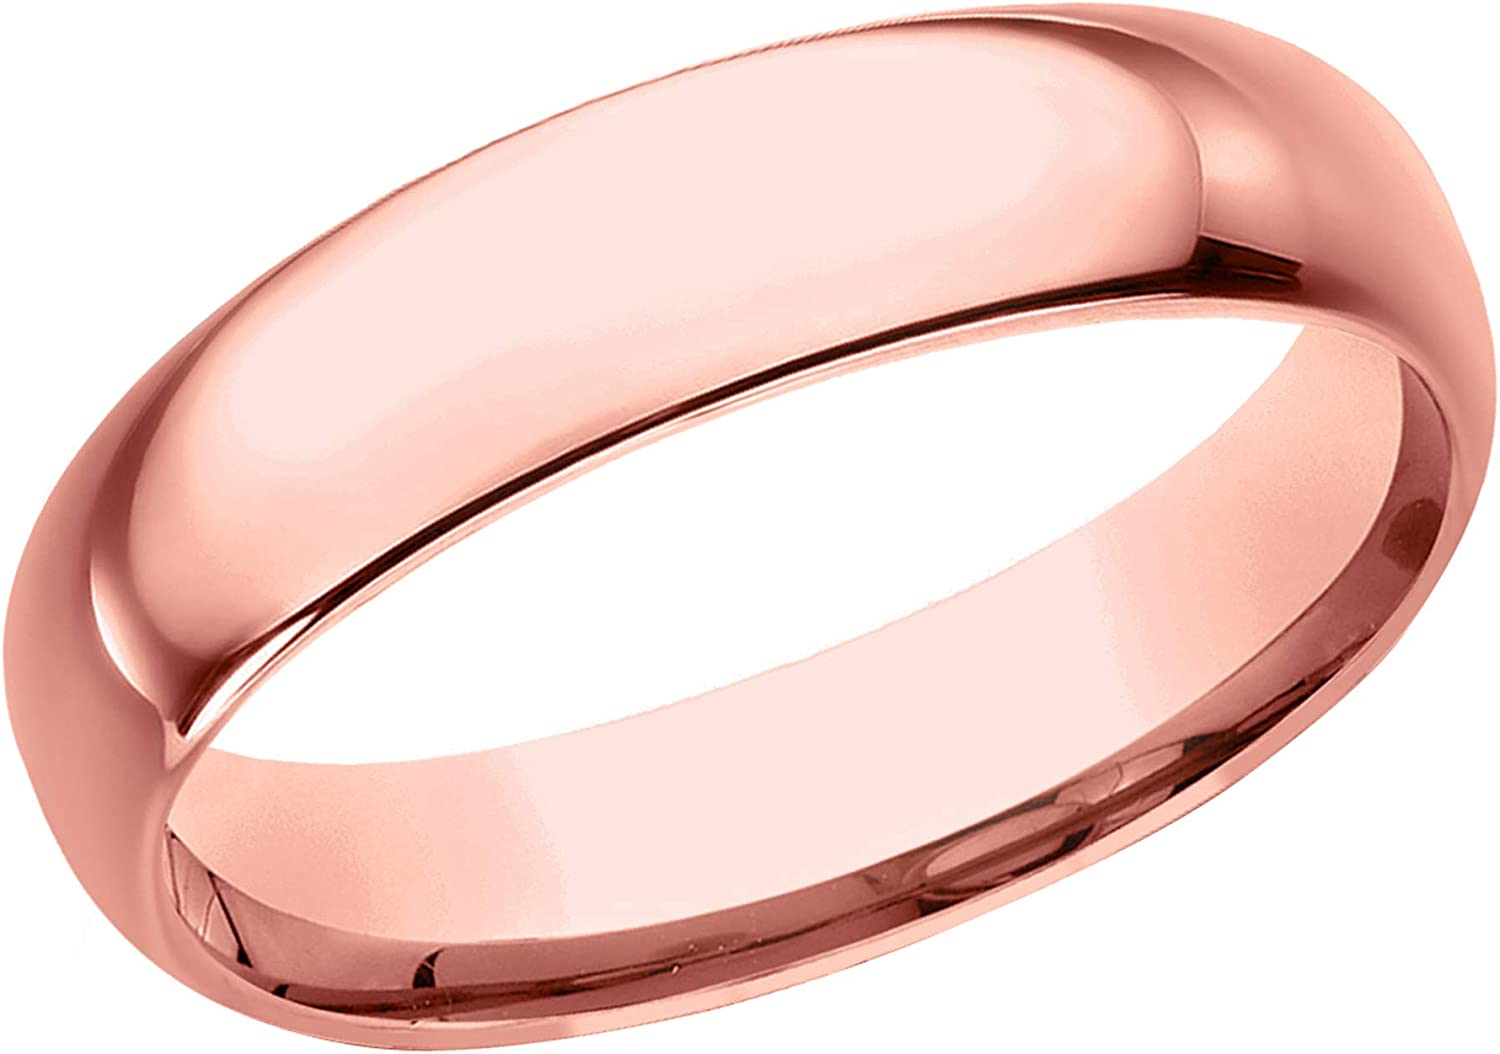 Prism Jewel 5.30mm D Shape Unisex Plain Stackable Wedding Band Crafted In 10k Gold